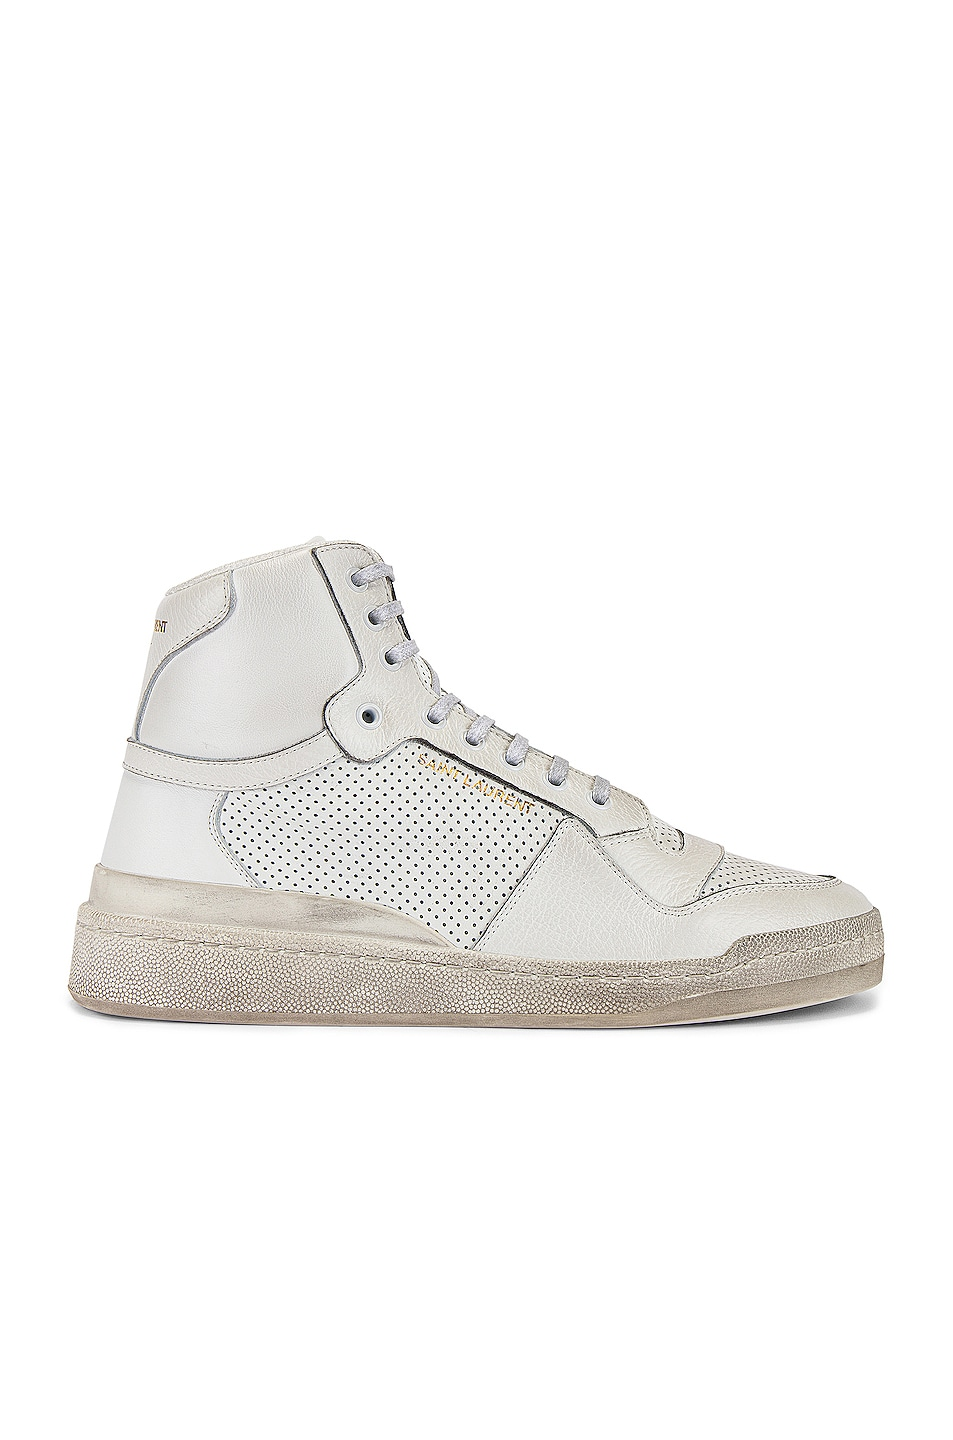 Image 1 of Saint Laurent SL24 Hi Top Sneaker in White